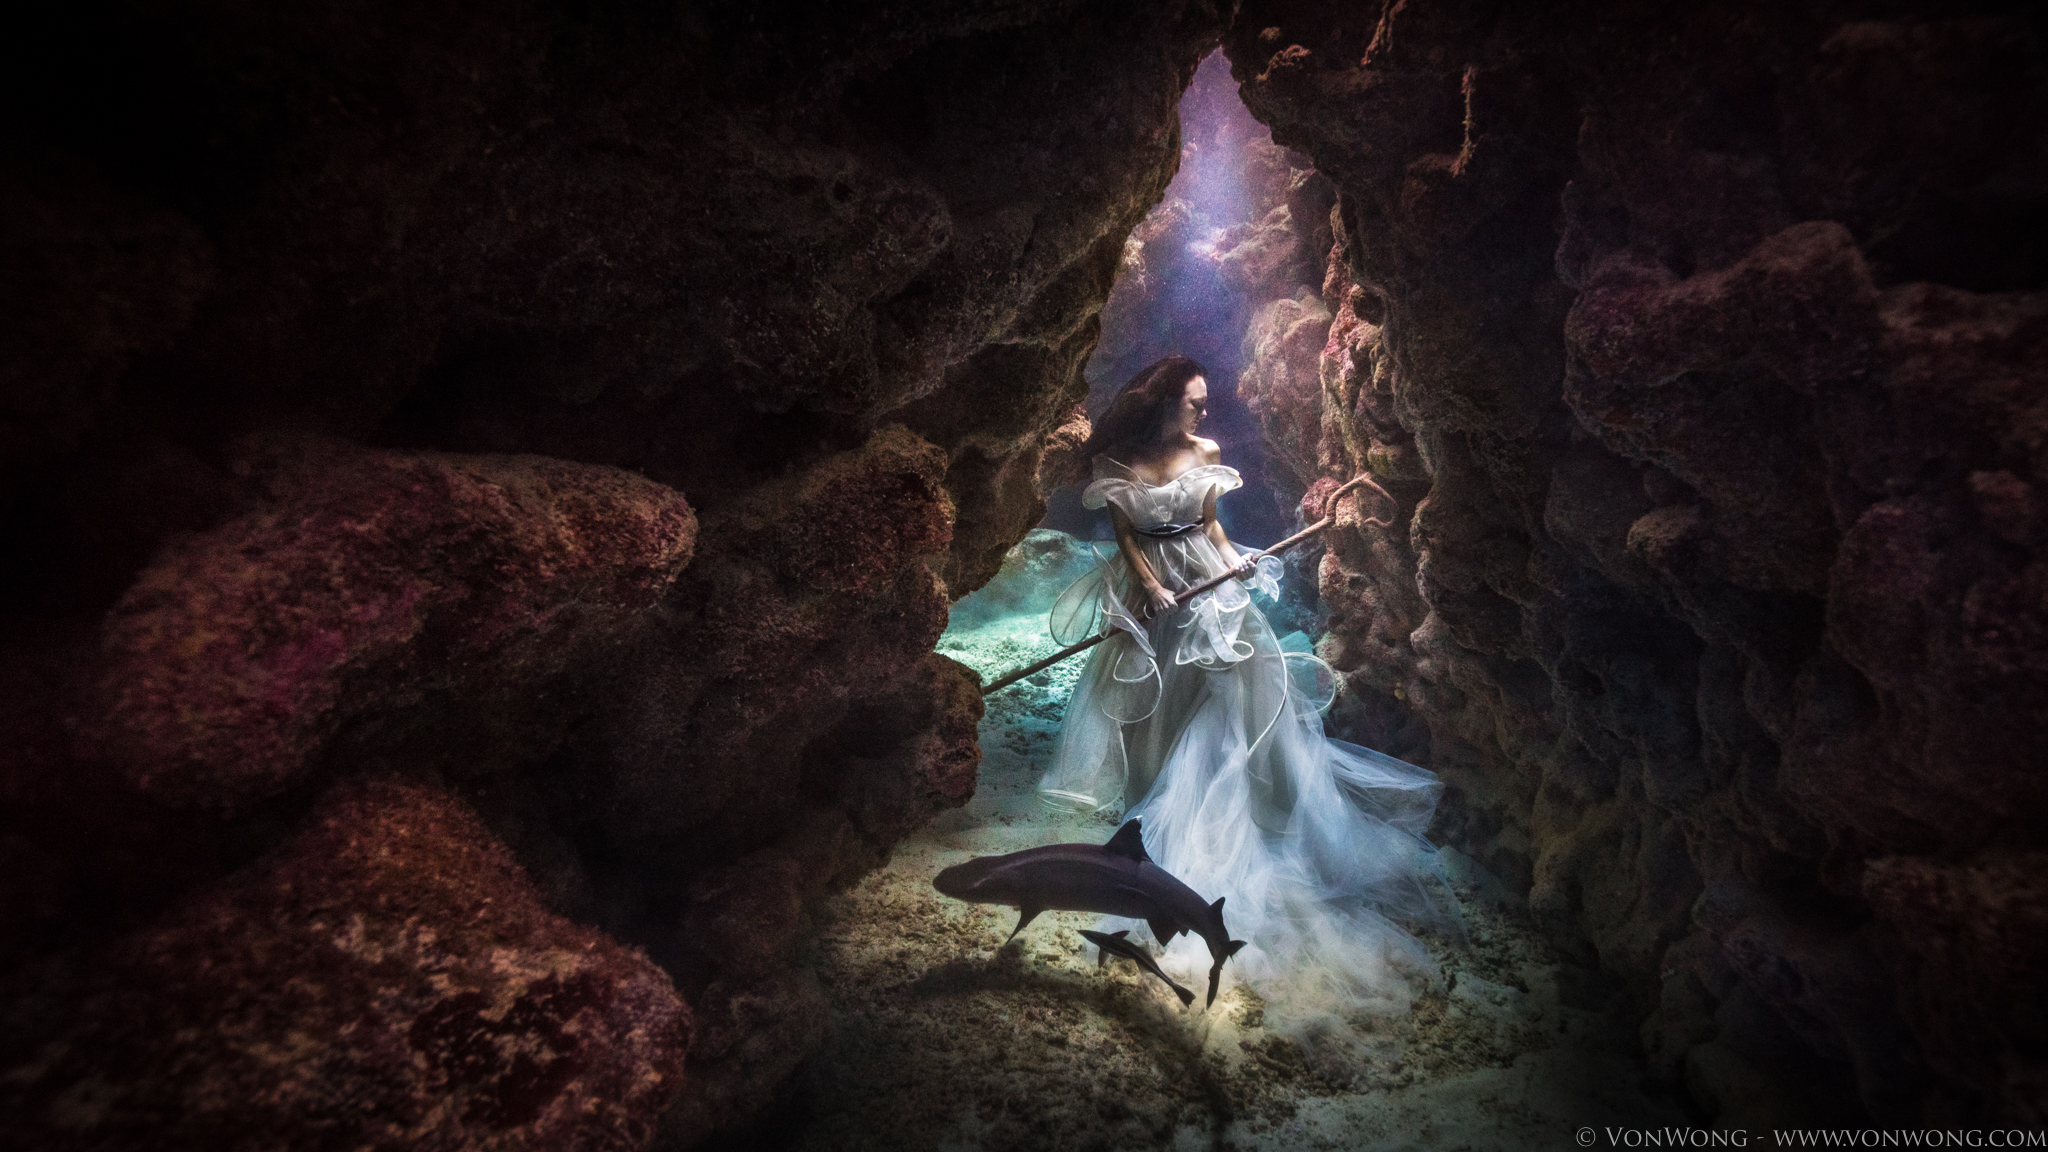 https://iso.500px.com/wp-content/uploads/2016/01/SharkShepherd_VonWong_5.jpg